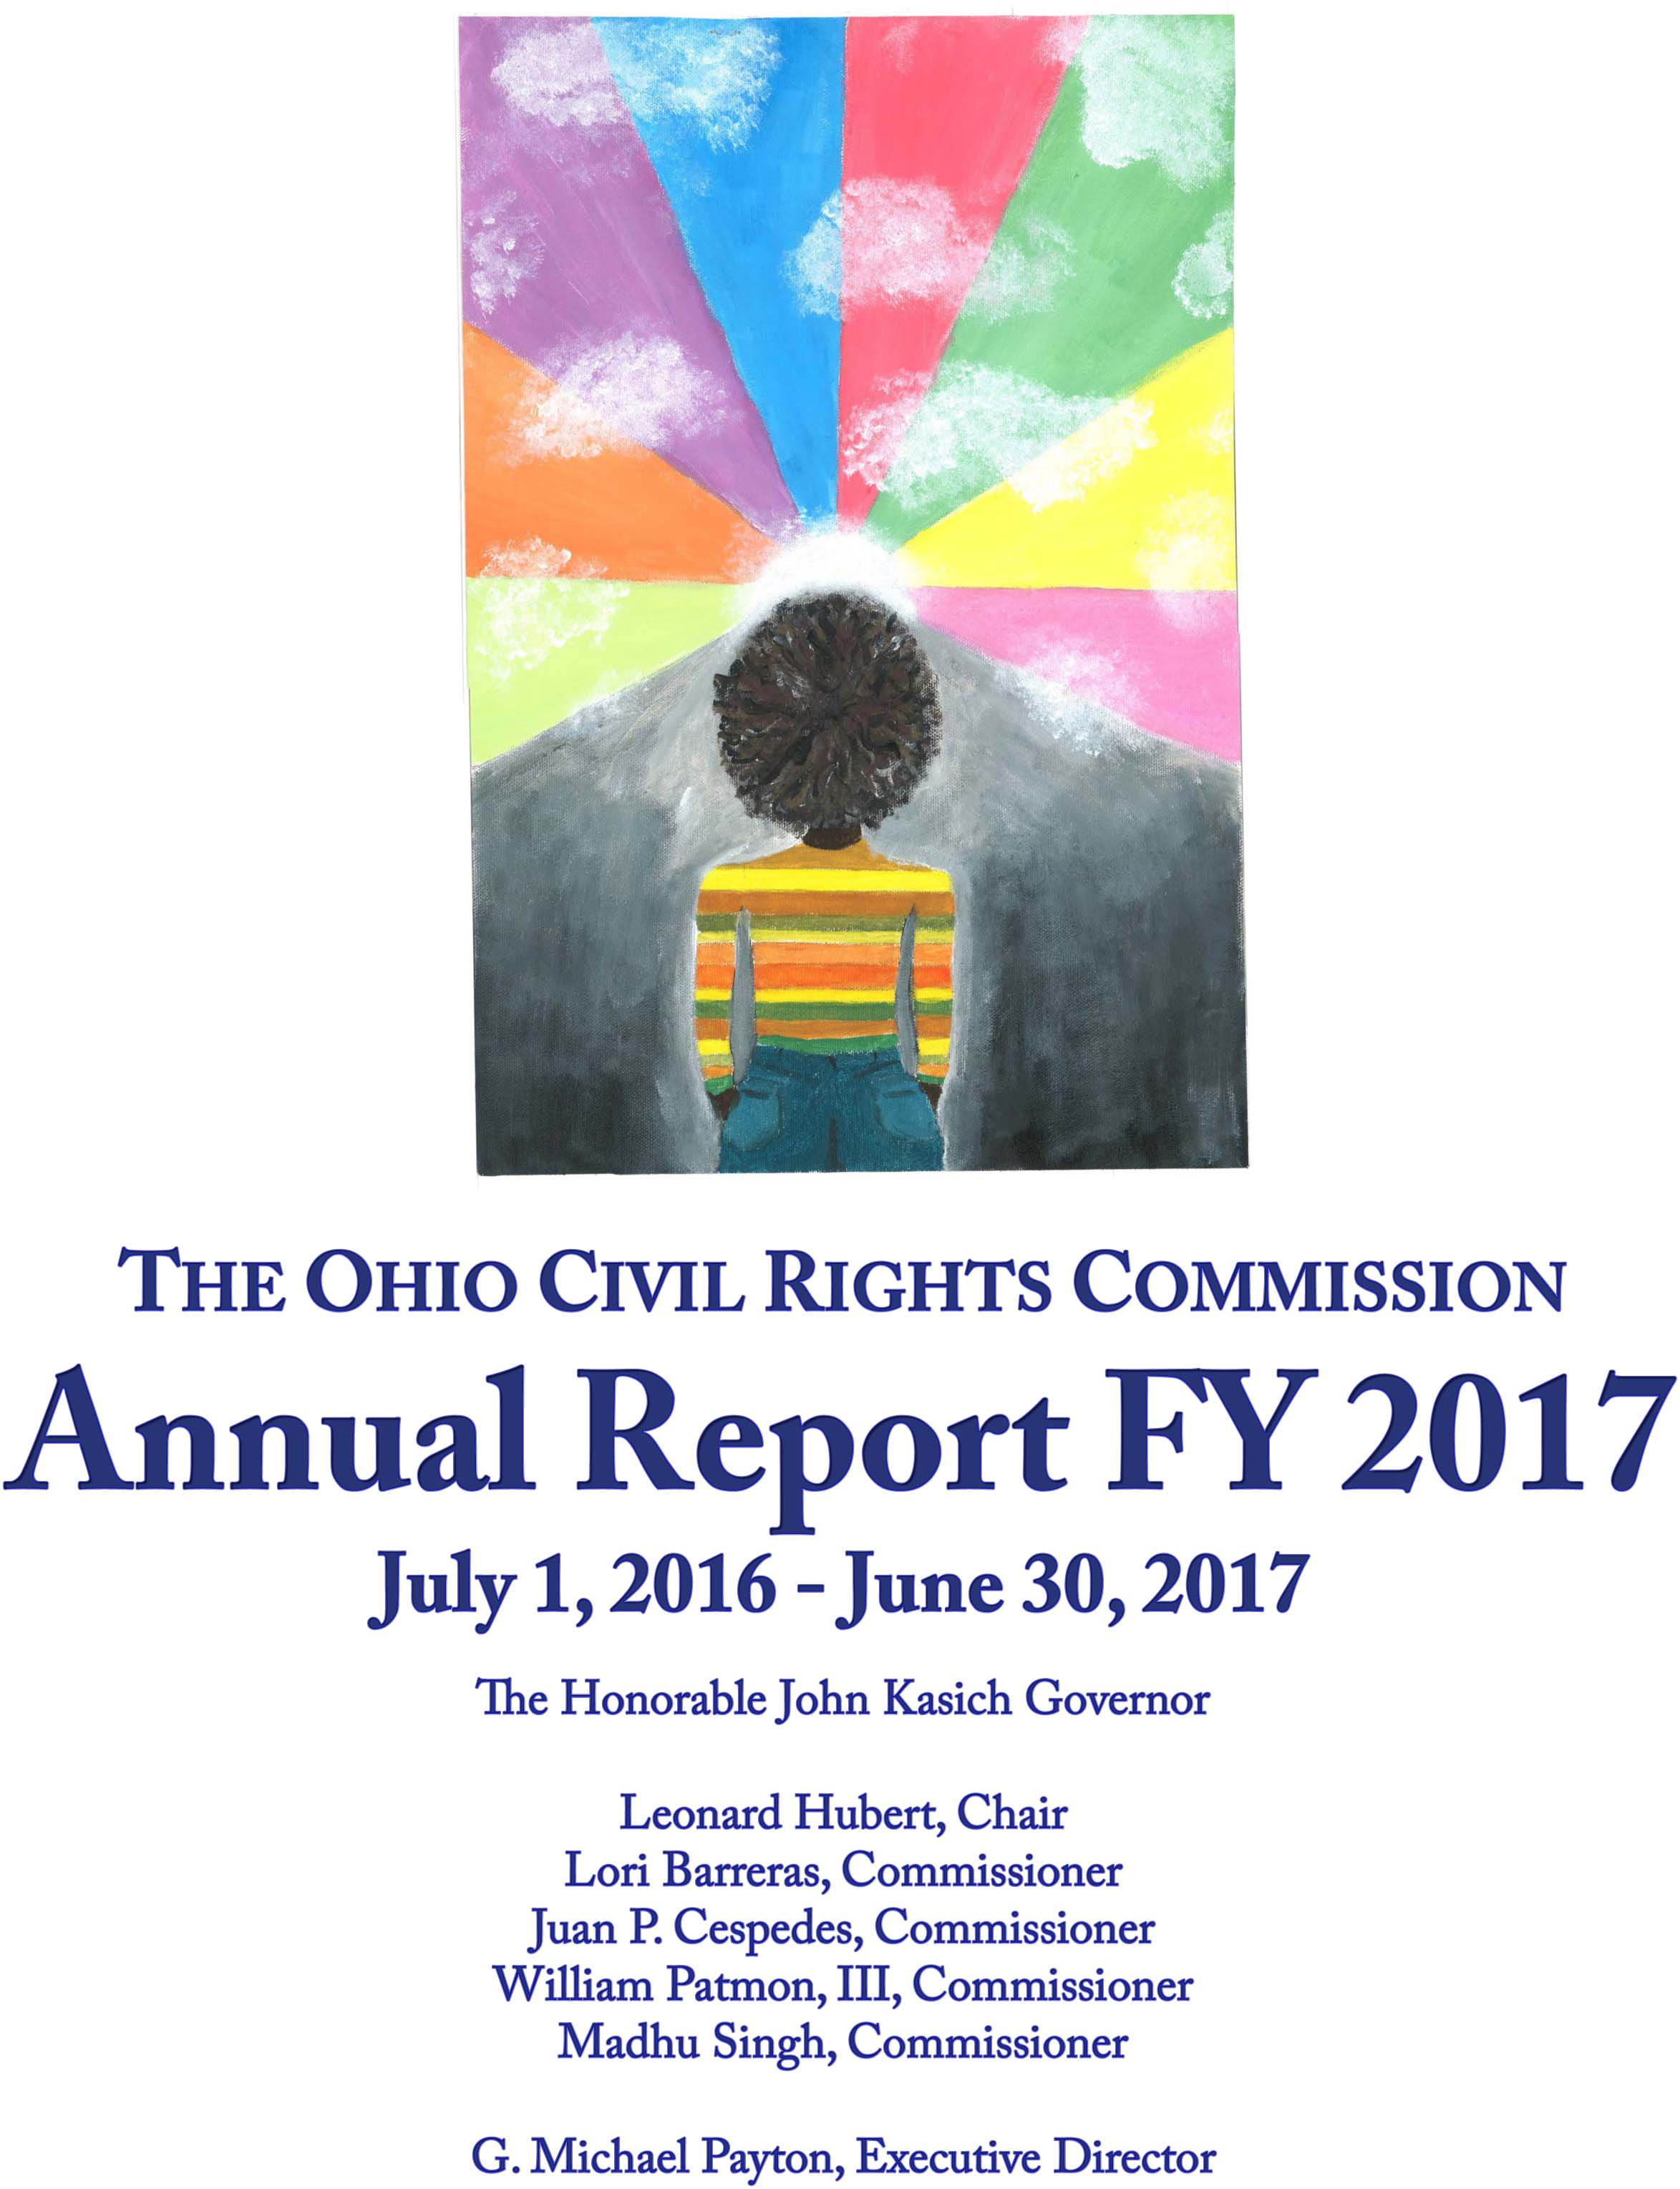 image of the the cover of the FY 2017 Annual Report